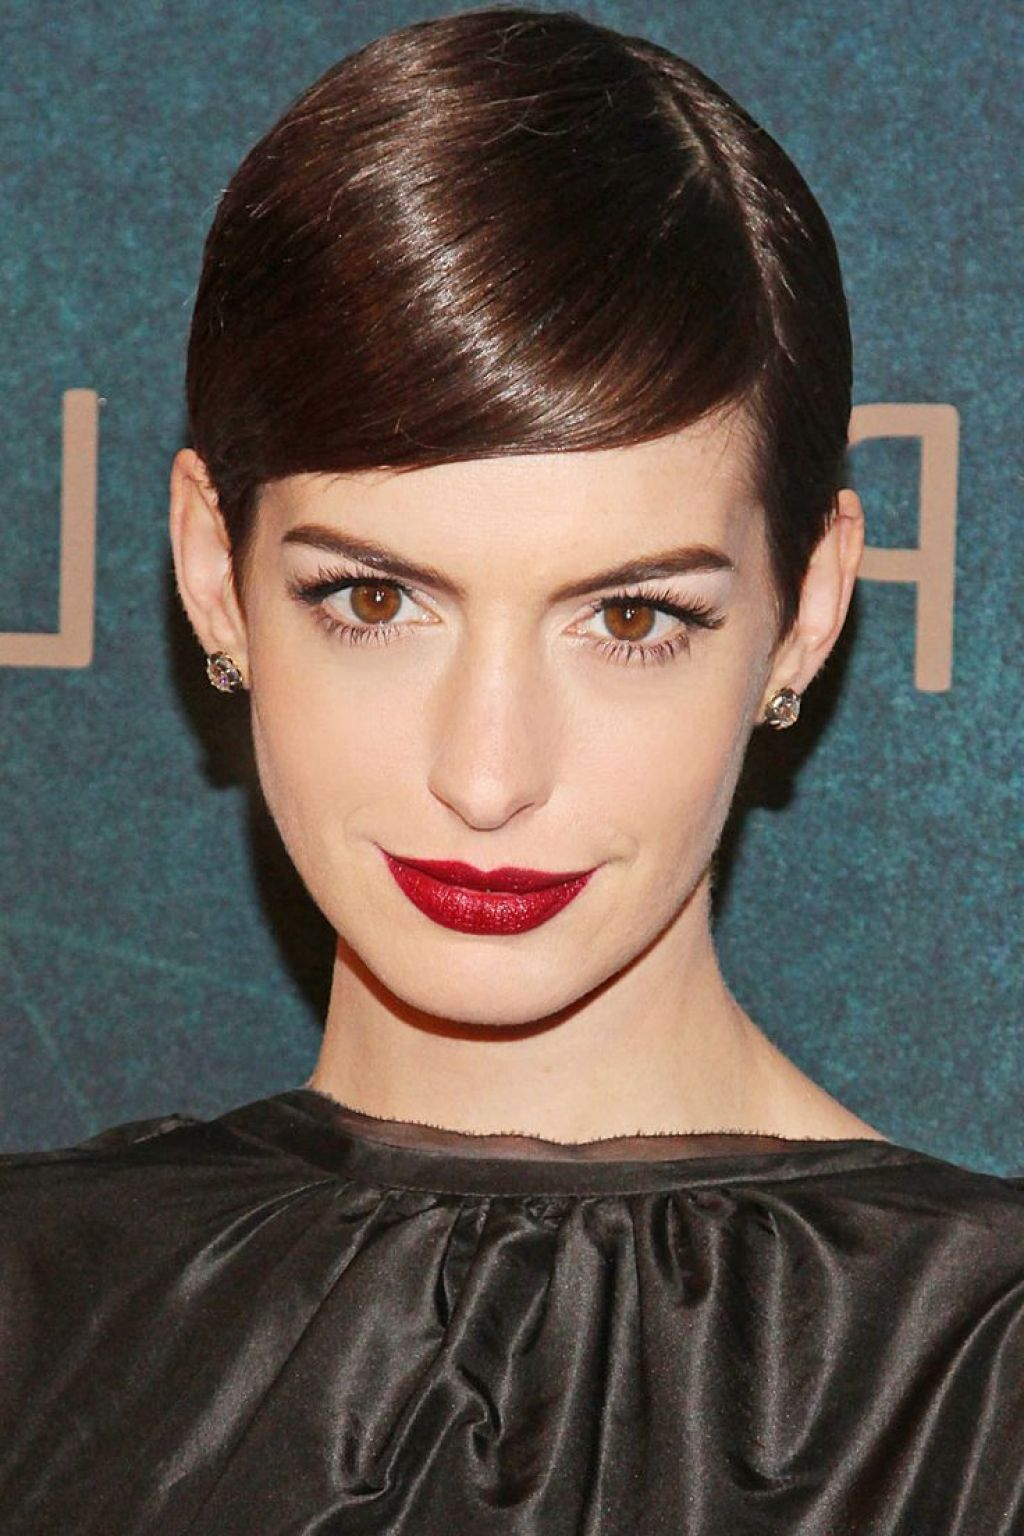 Mandy moore hairstyle pixie cut here s mandy with her trademark dark